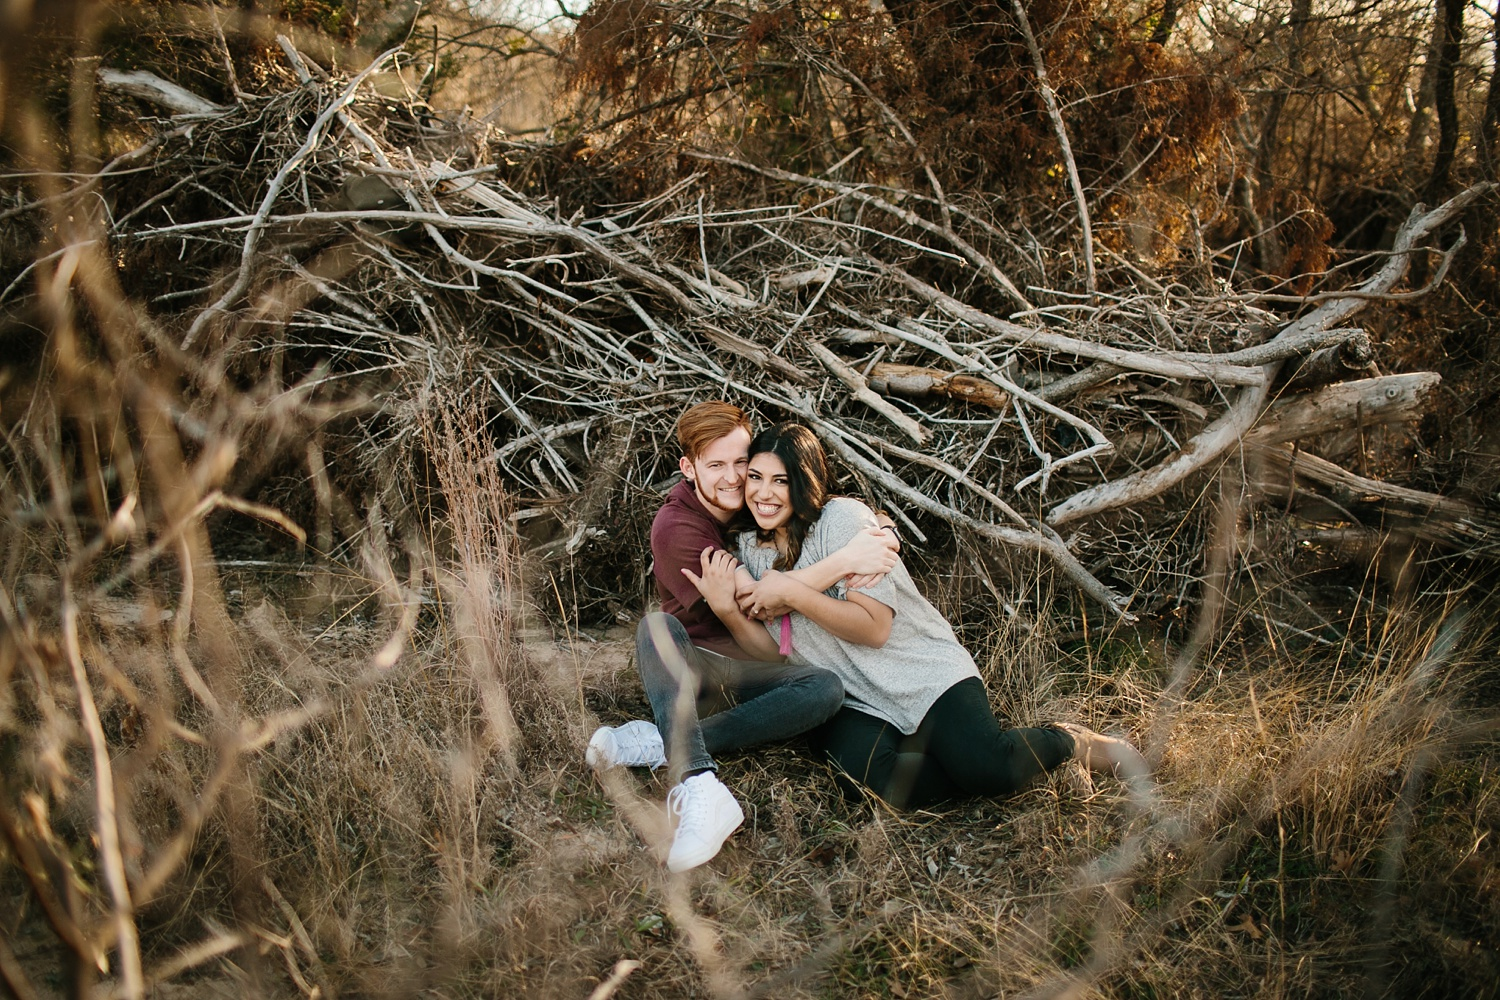 Grant + Lysette - floral dress engagement session by North Texas Wedding Photographer Rachel Meagan Photography033